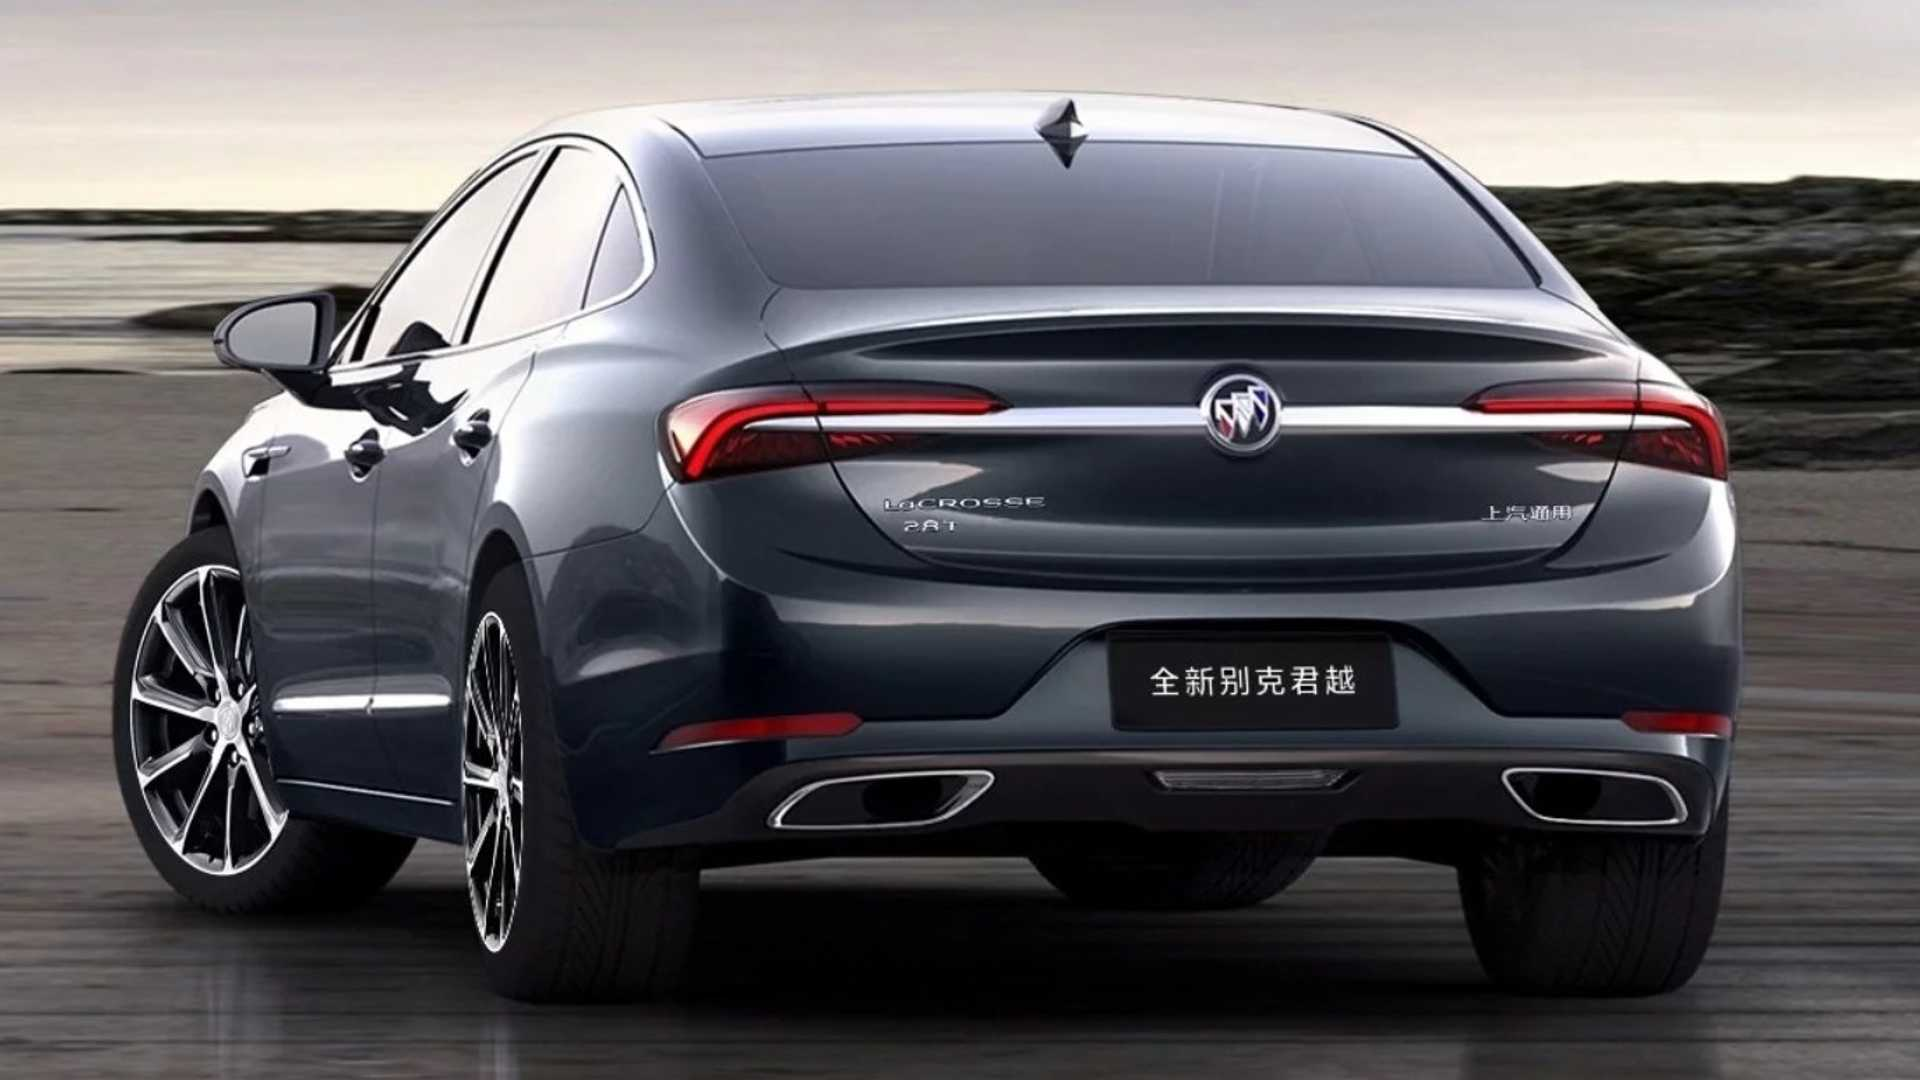 2020 buick lacrosse debuts in china looks like a premium